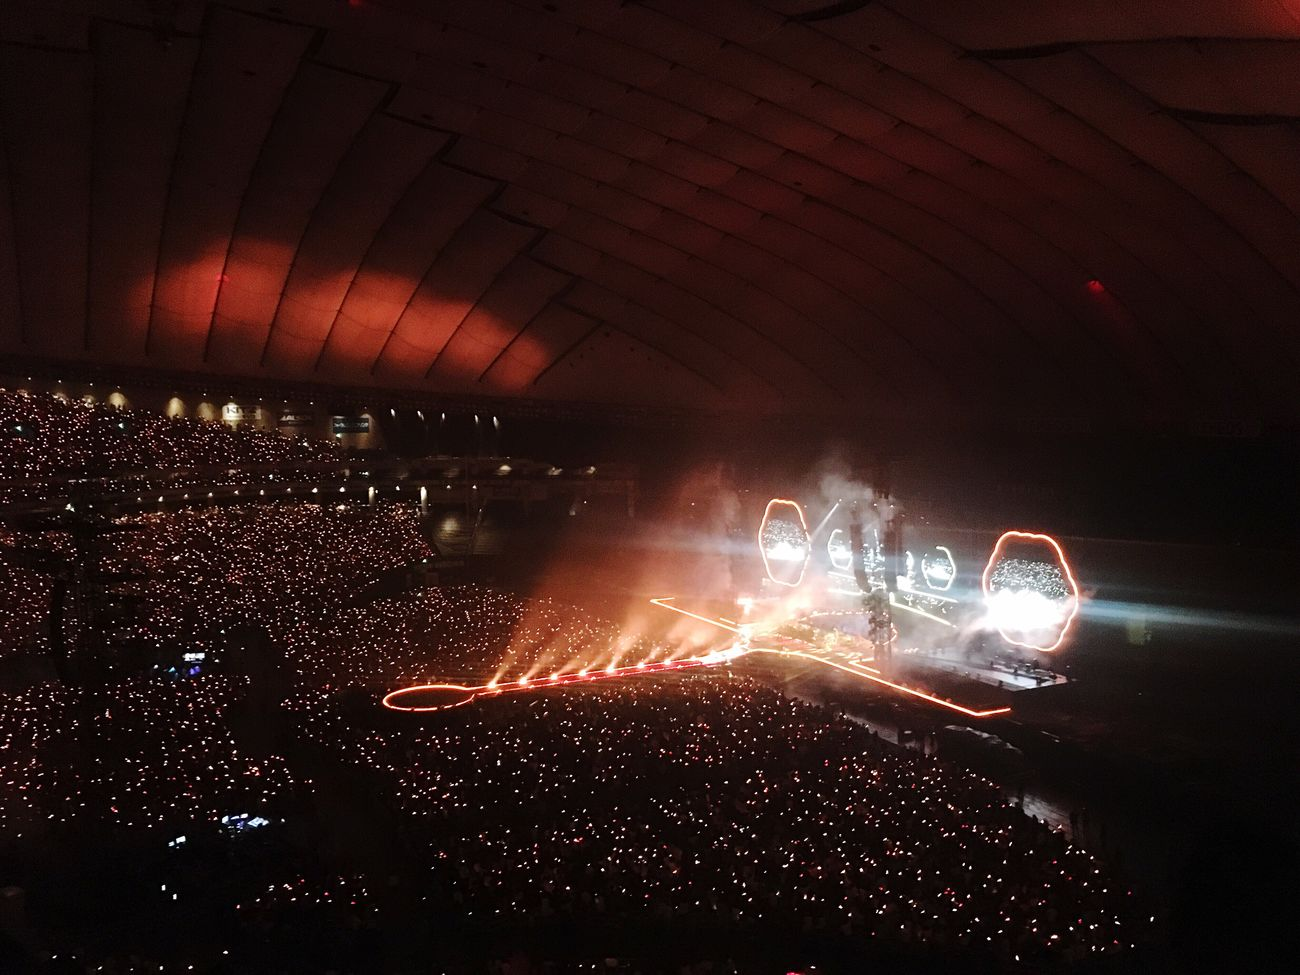 Concert Coldplay Coldplay Concert  Music AHFODtour Live Tokyo